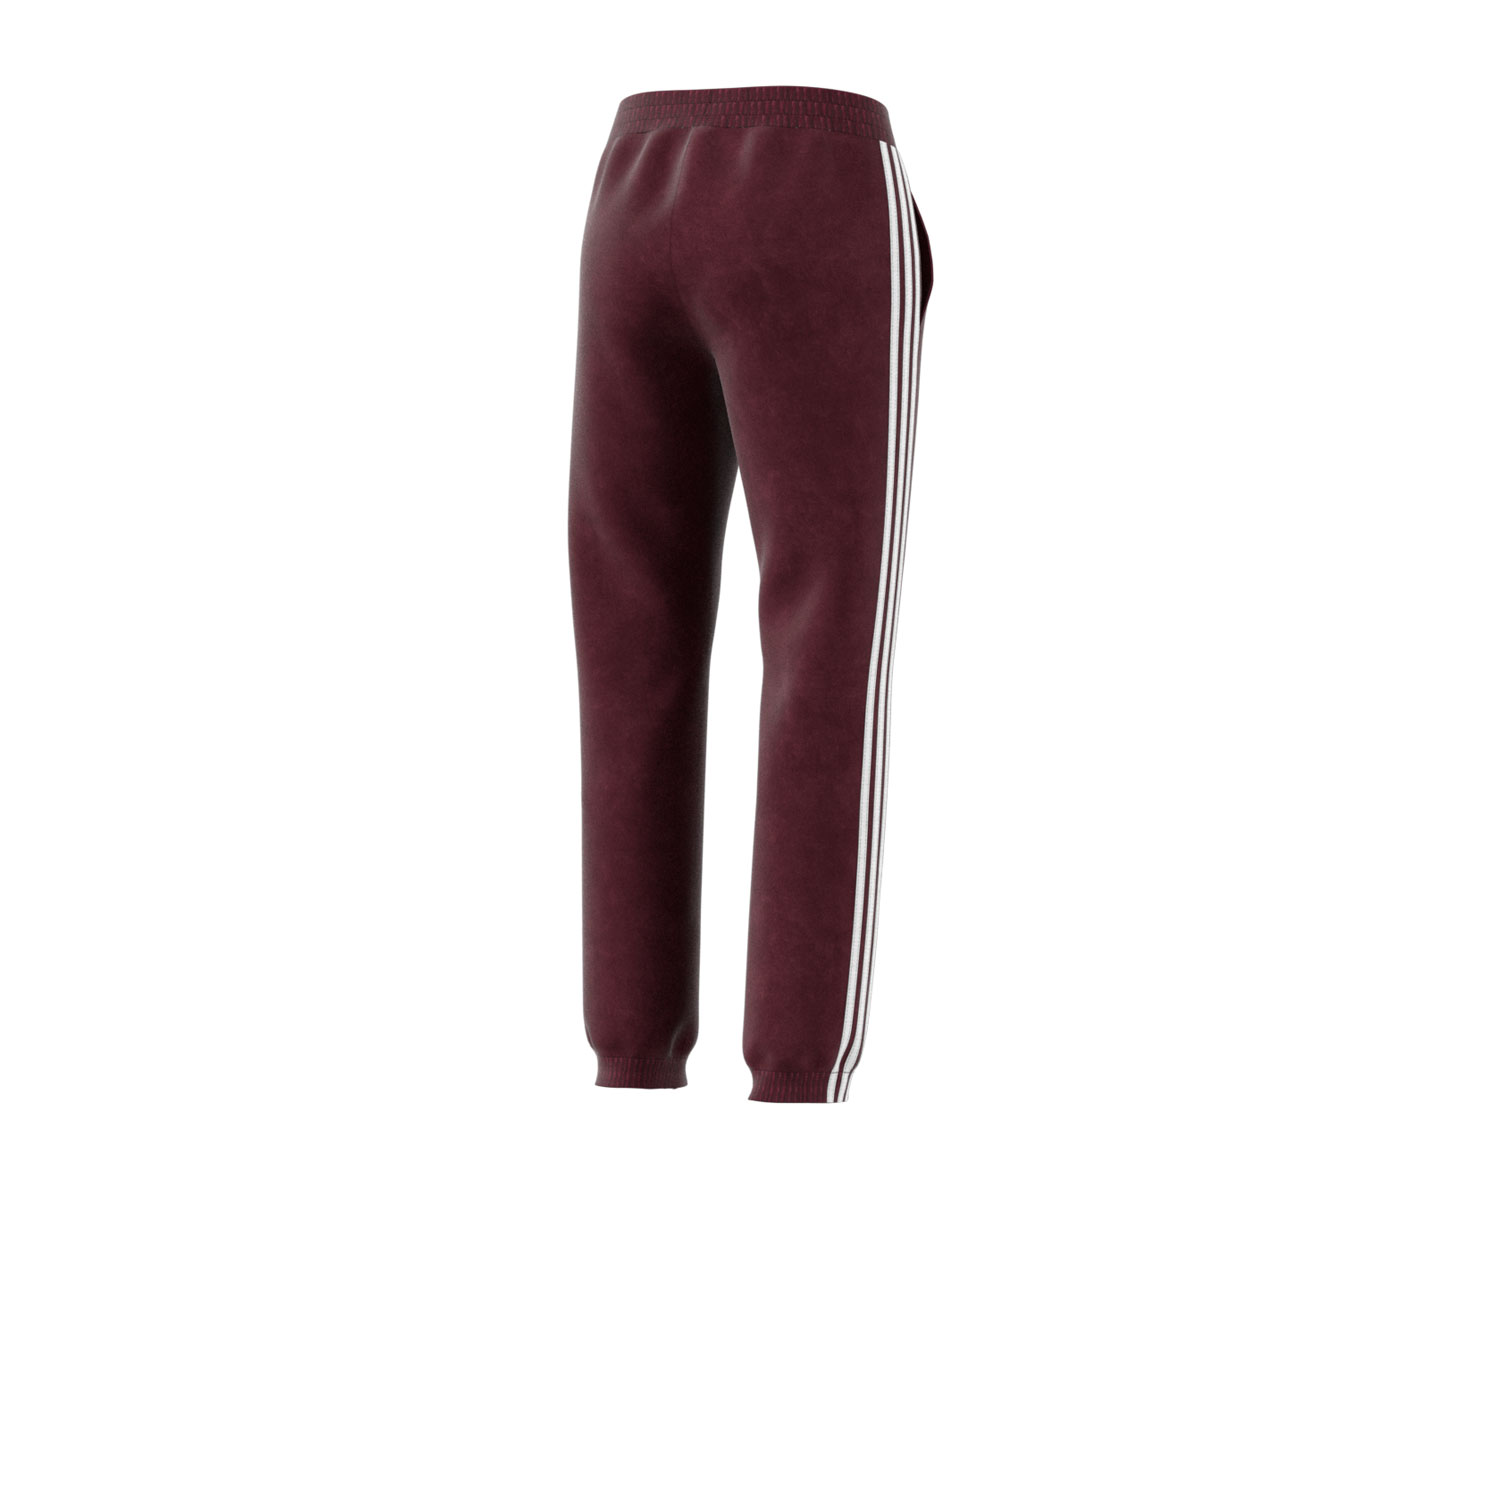 Details about Adidas Originals 3 Stripes Women's Cuffed Velour Jogger Pants Maroon dh3114